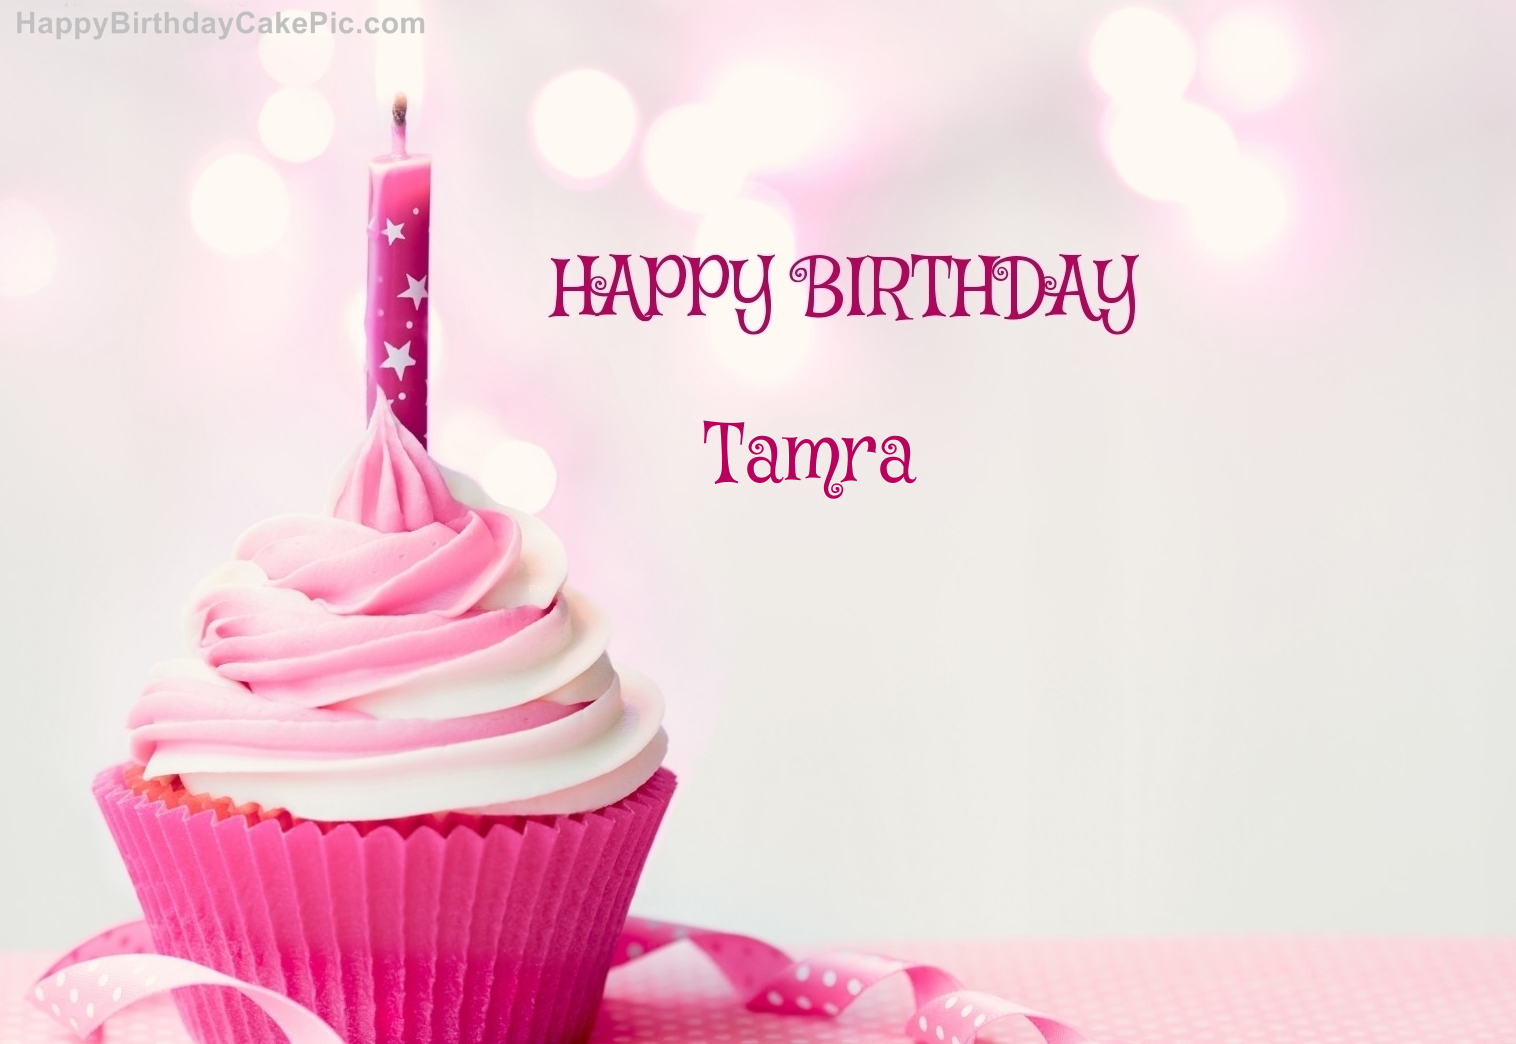 Happy Birthday Cupcake Candle Pink Cake For Tamra